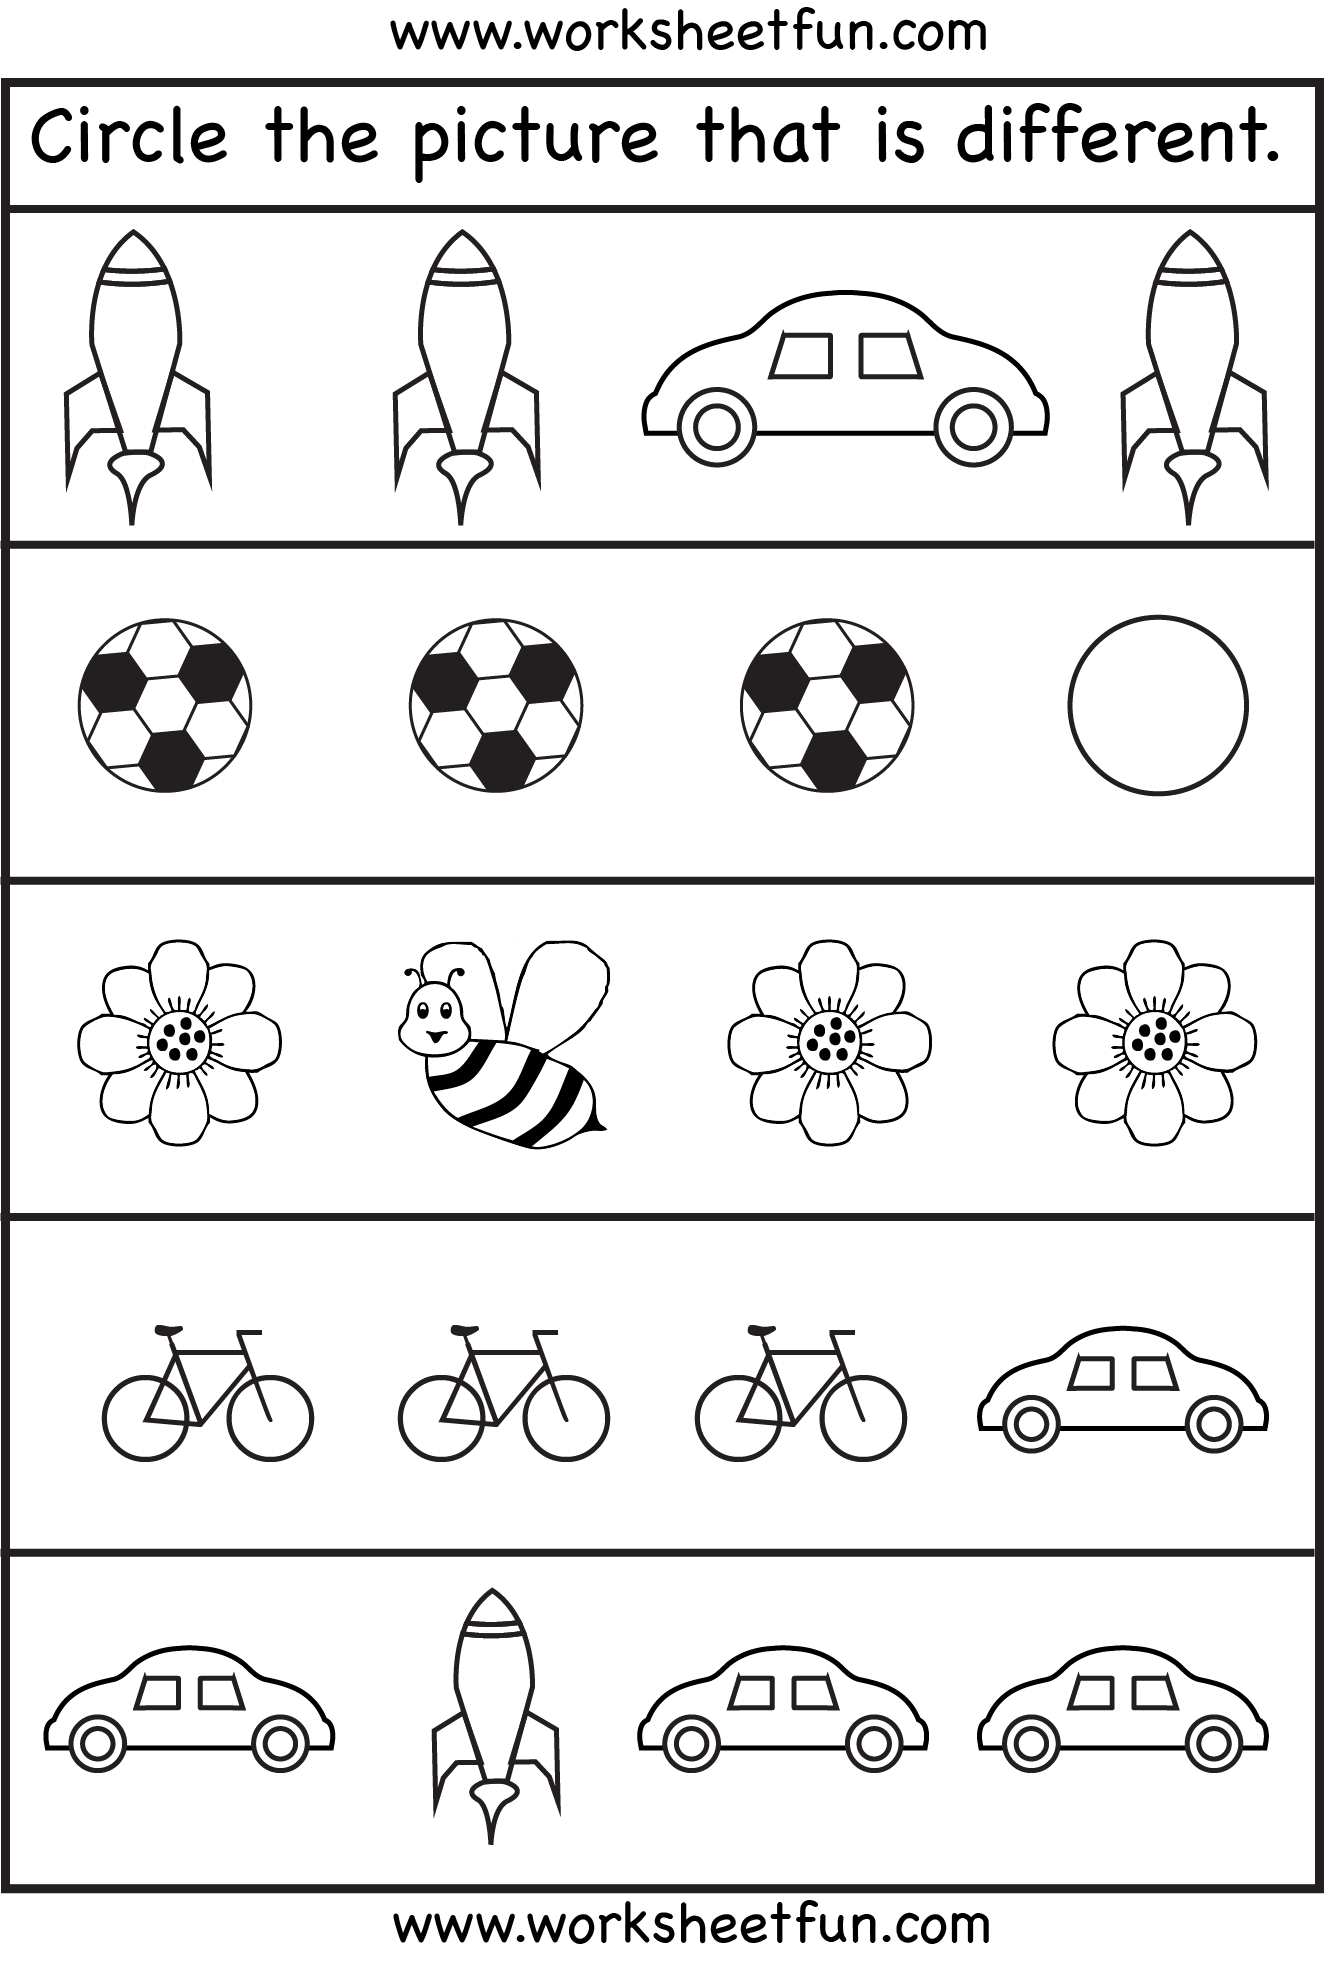 Worksheets Educational Worksheets For Preschoolers circle the picture that is different 4 worksheets preschool and other concepts shapes math etc free printable kindergarten worksheets